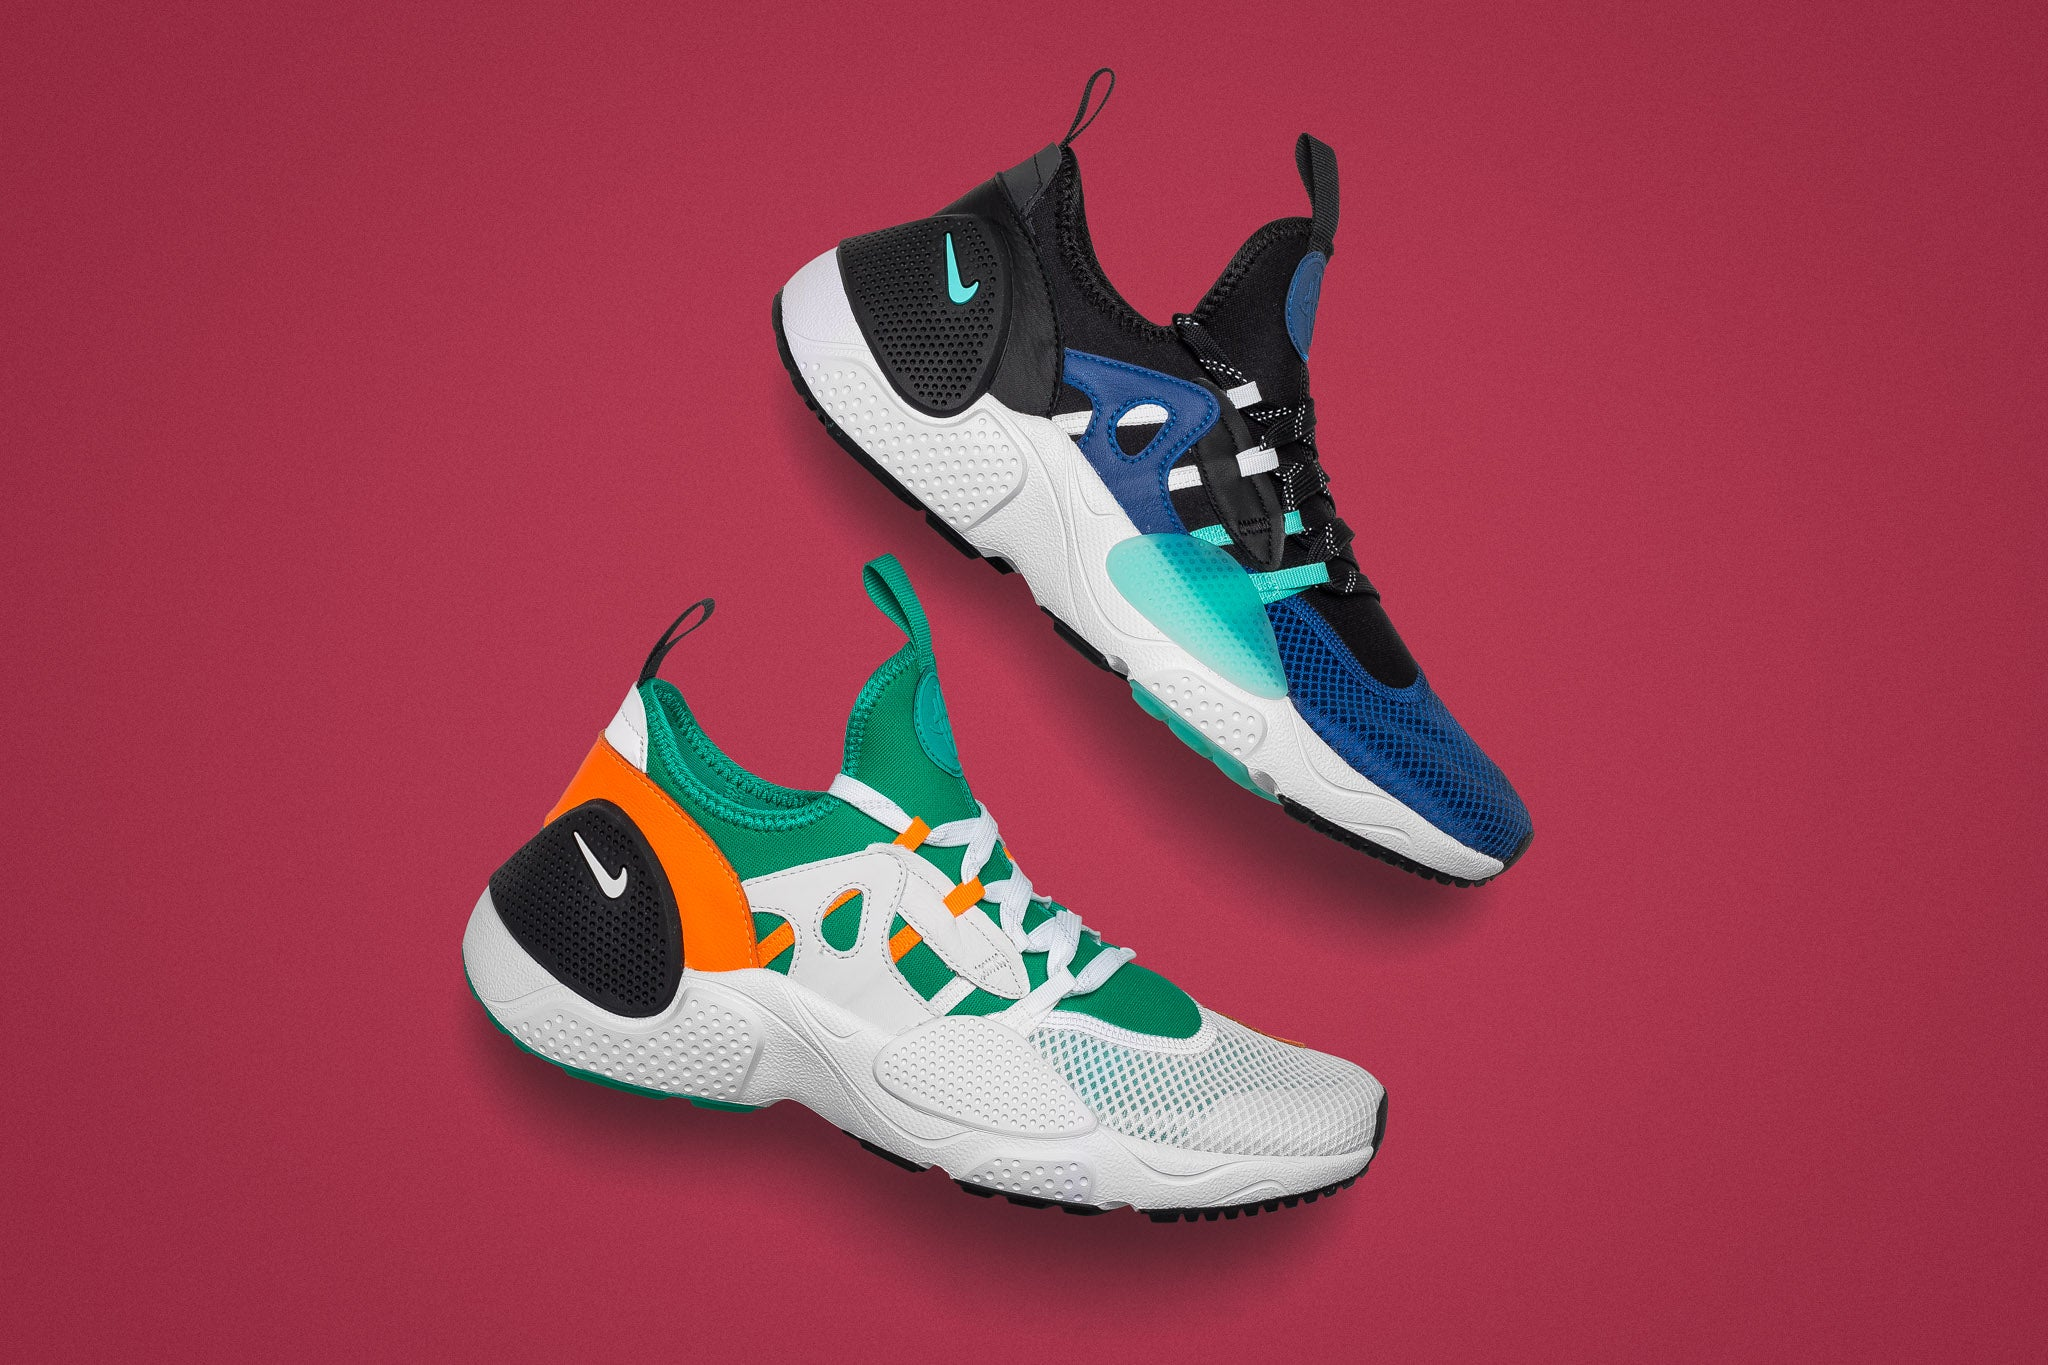 e78c980bc23 The Nike Huarache E.D.G.E. TXT QS is a reworked style of the classic  Huarache model